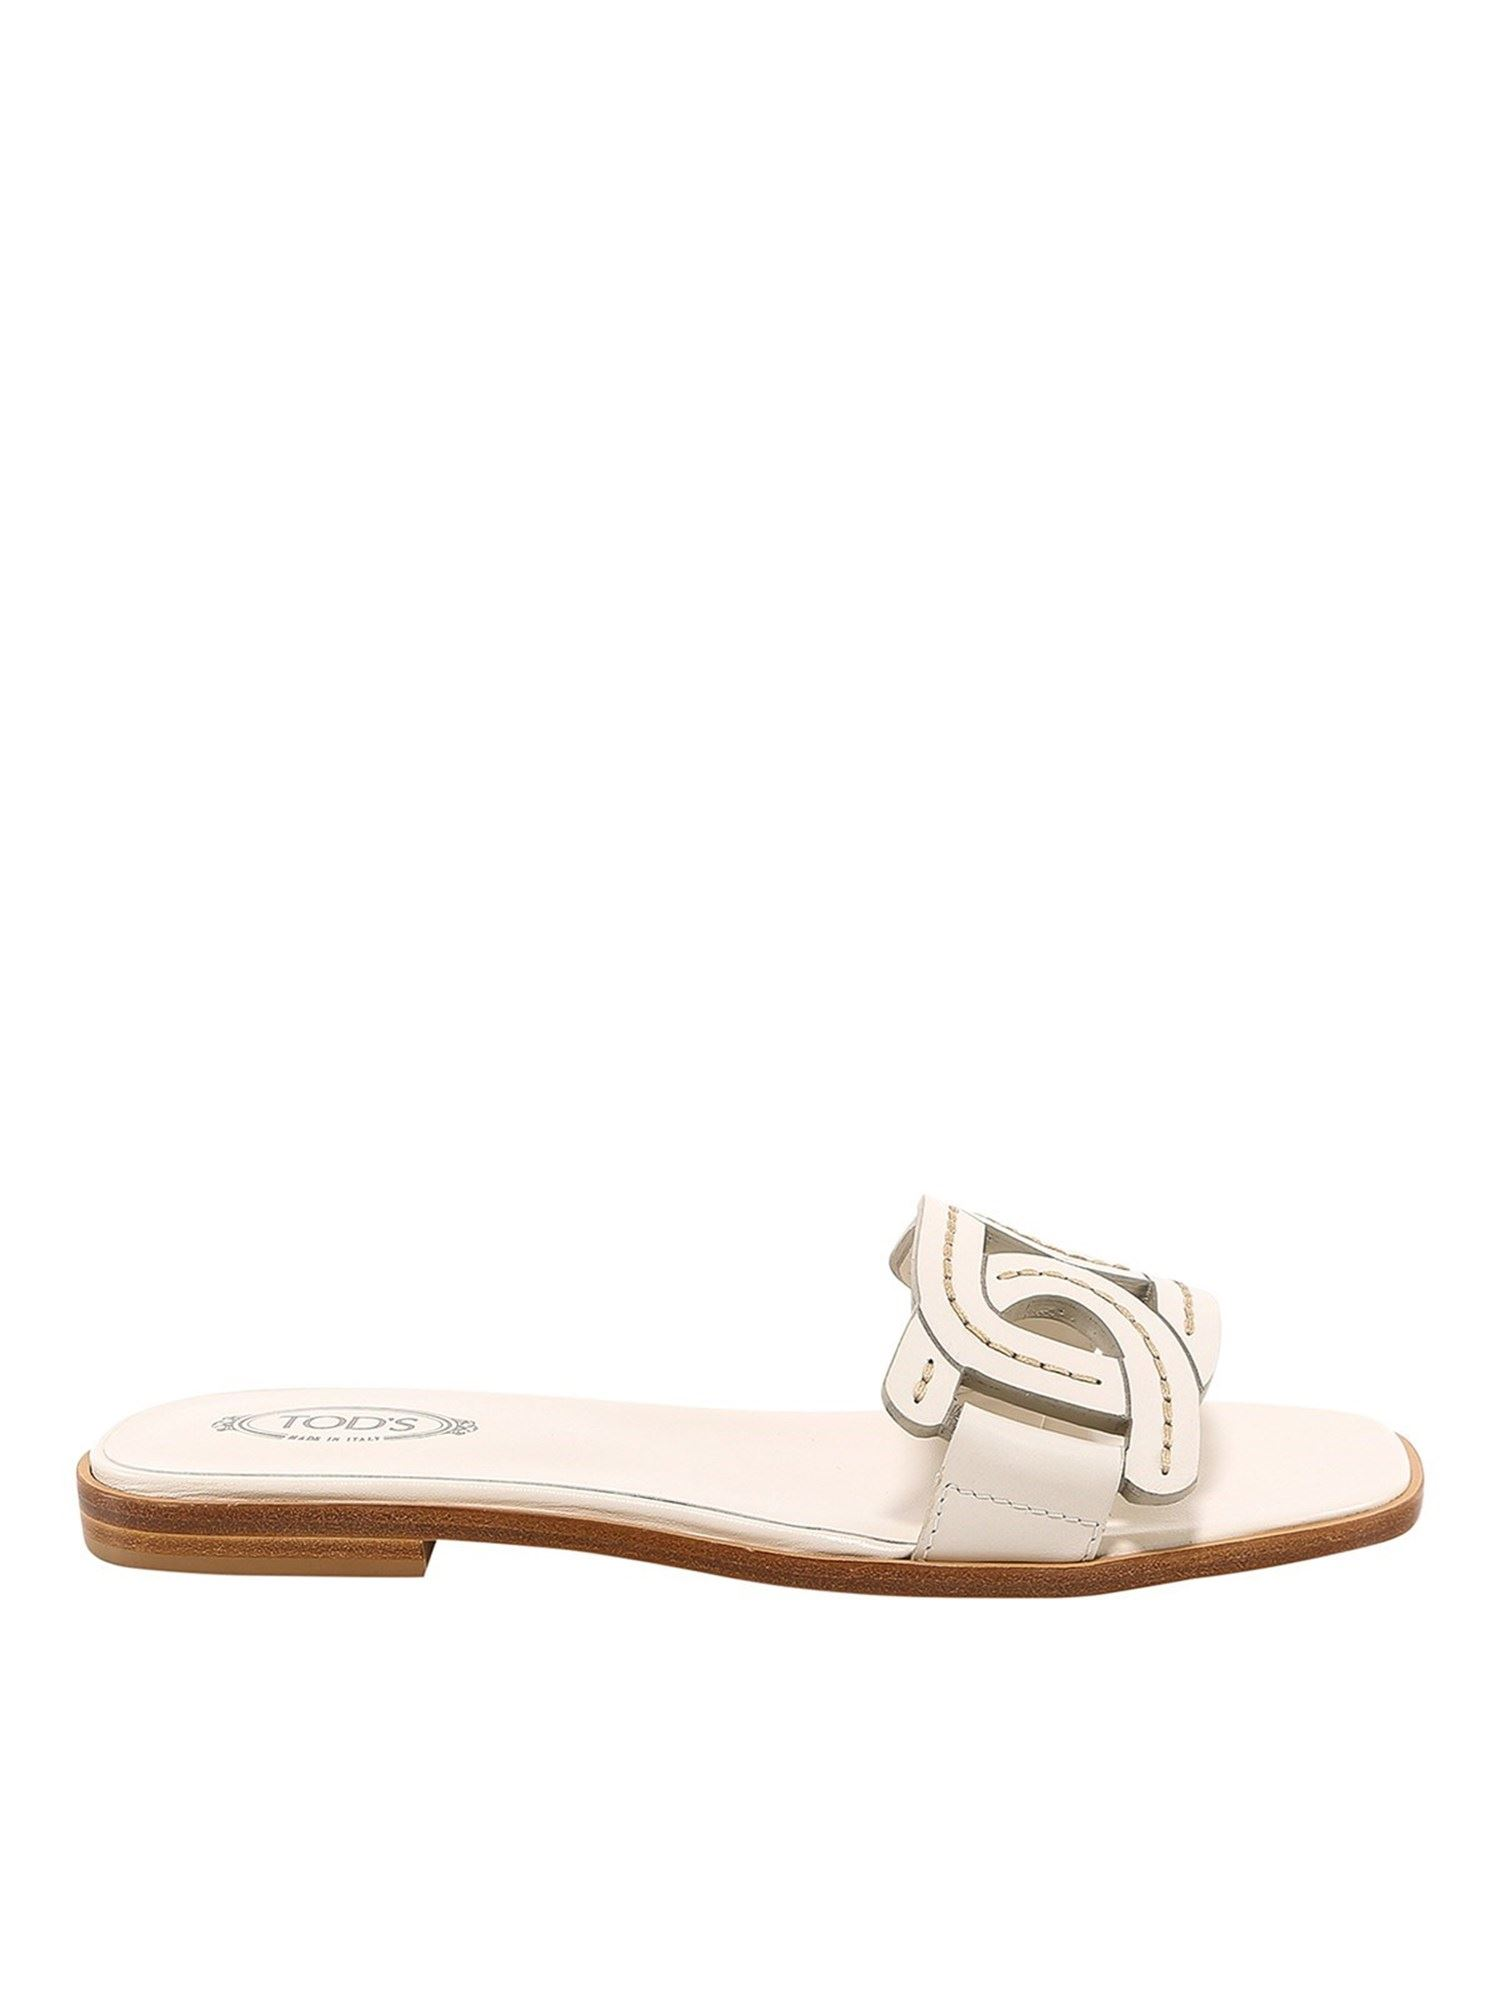 Tod's Leathers LEATHER FLAT MULES IN WHITE